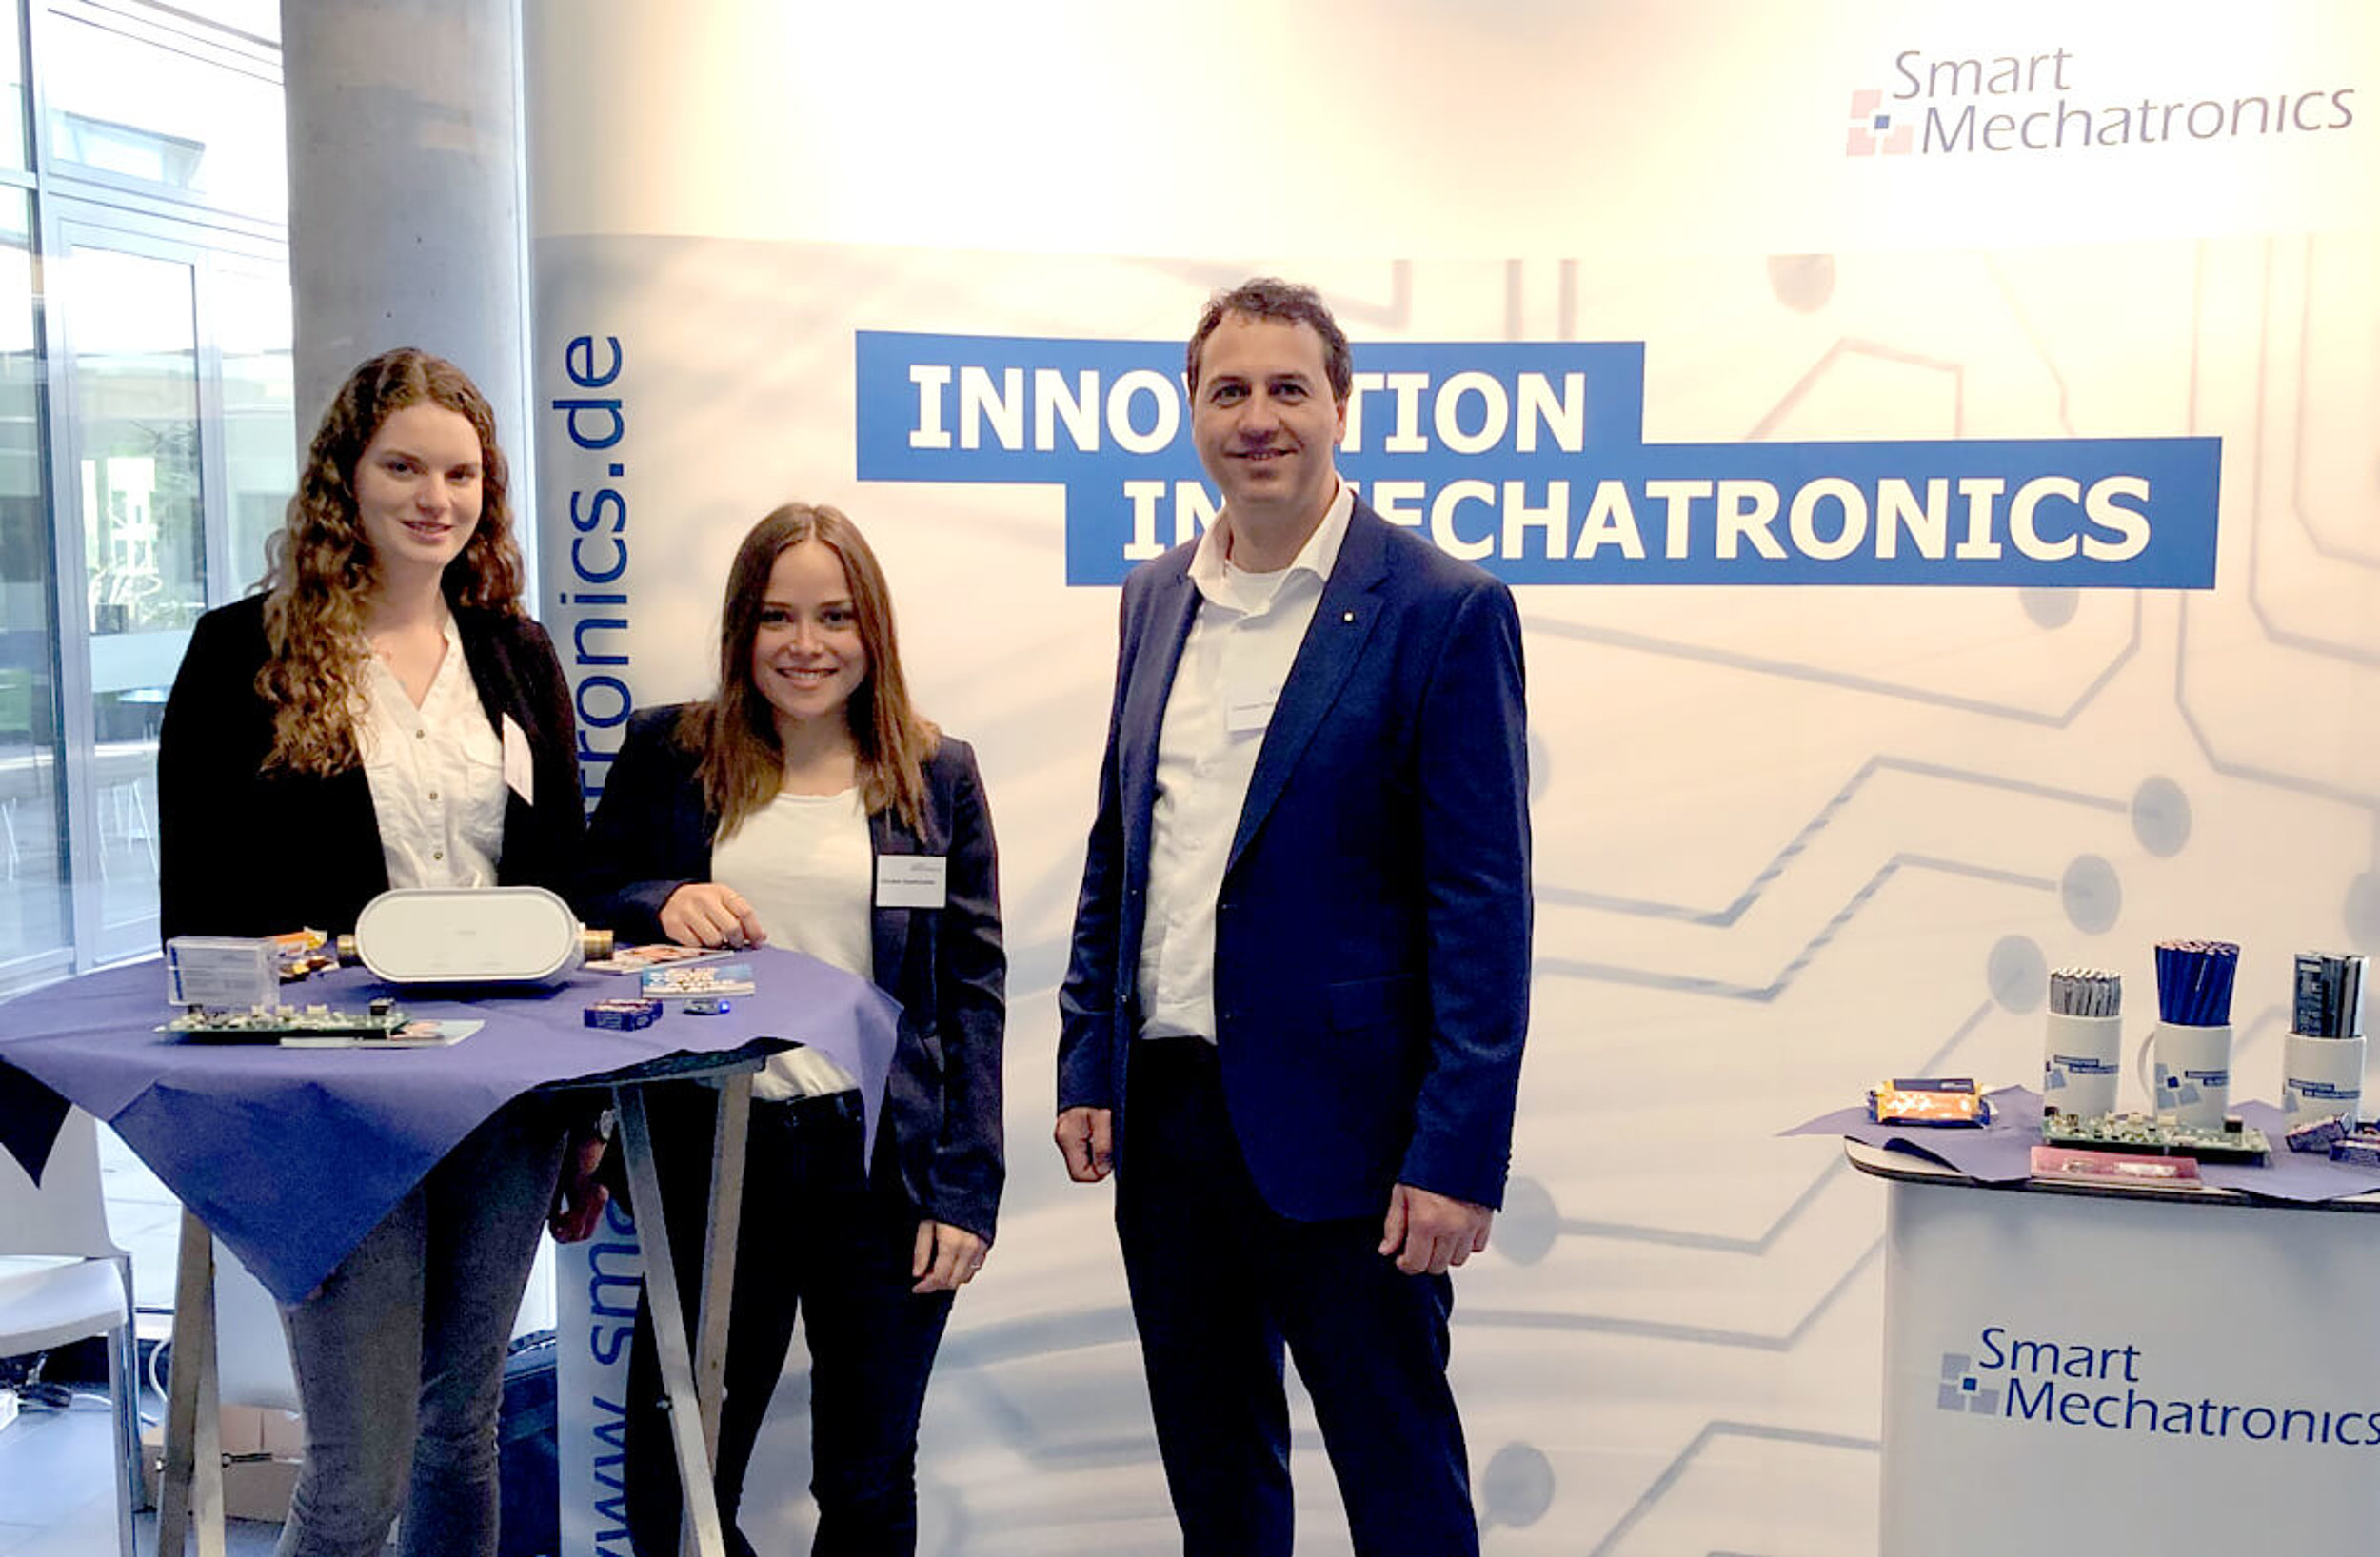 Karrieretag der WH in Gelsenkirchen: Smart mit Messestand vor Ort